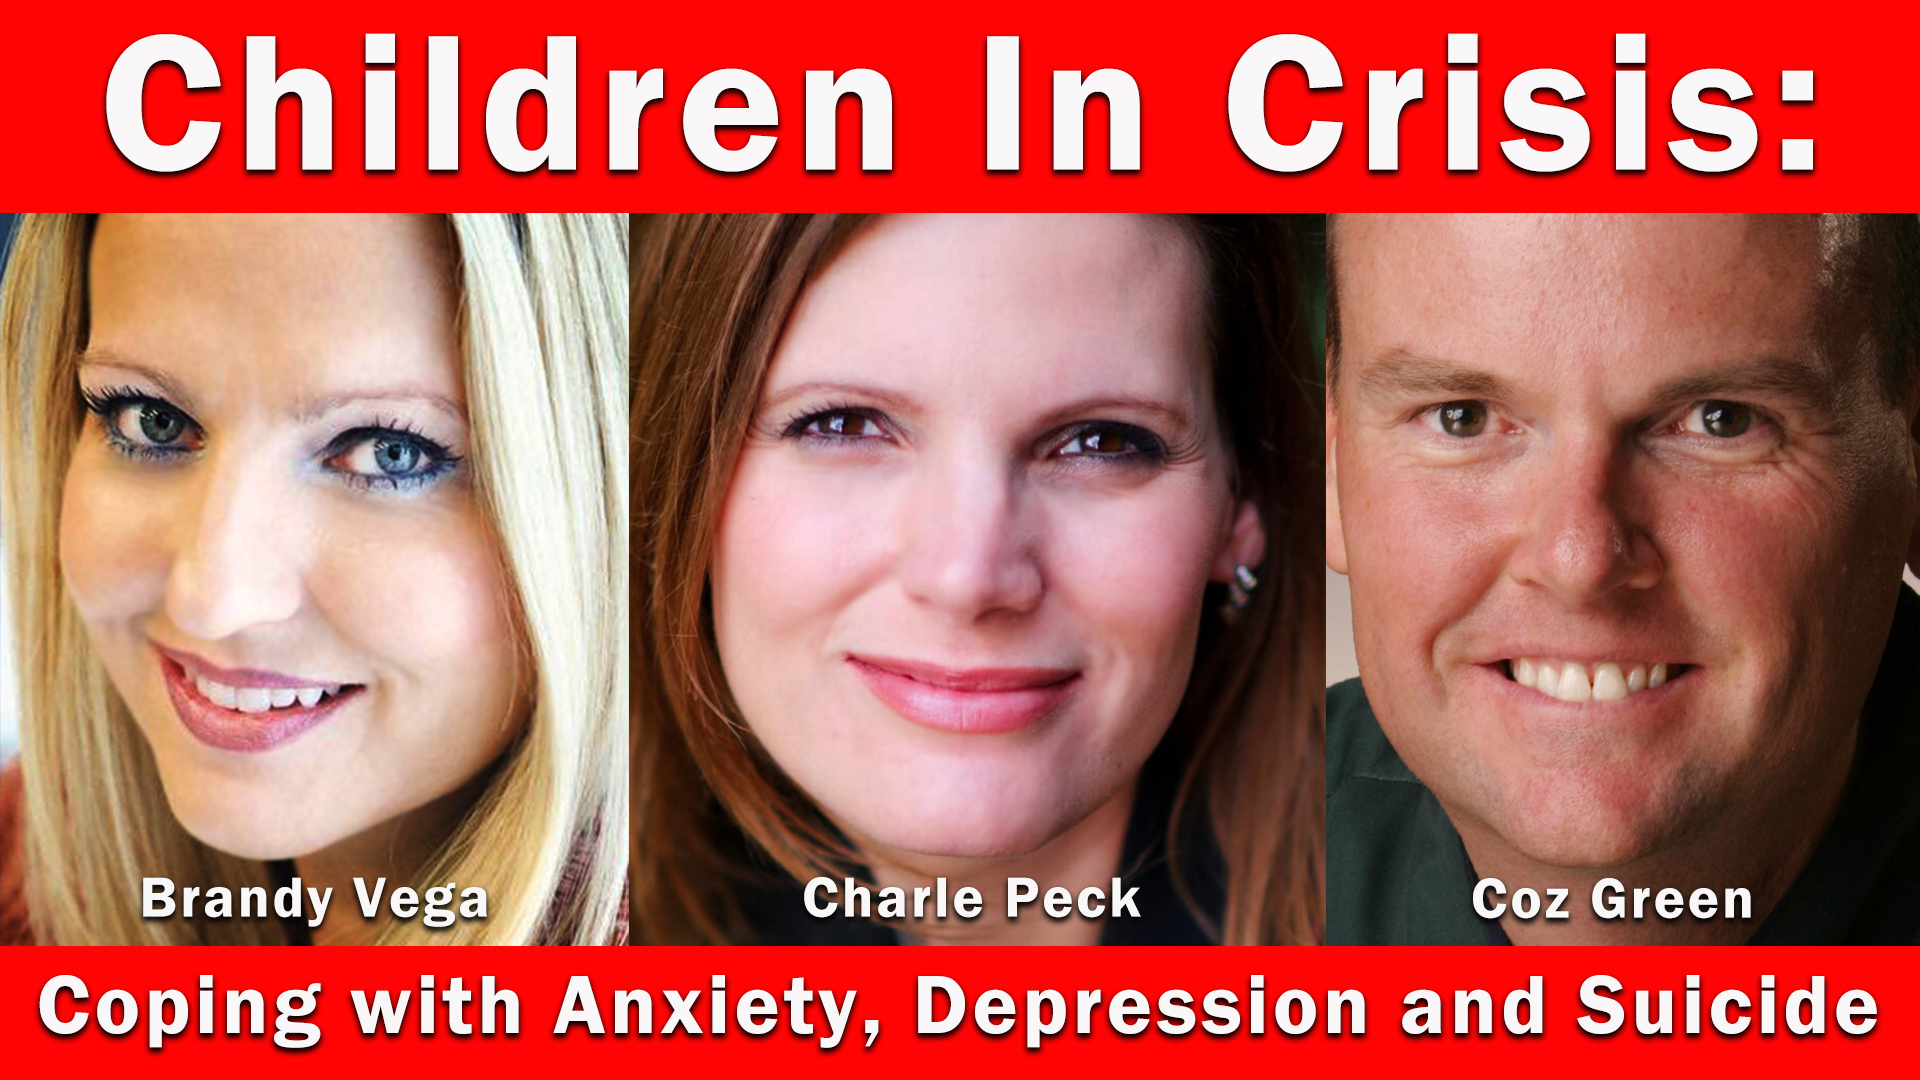 Children In Crisis: Coping with Anxiety, Depression and Suicide | Guests: Brandy Vega and Charle Peck